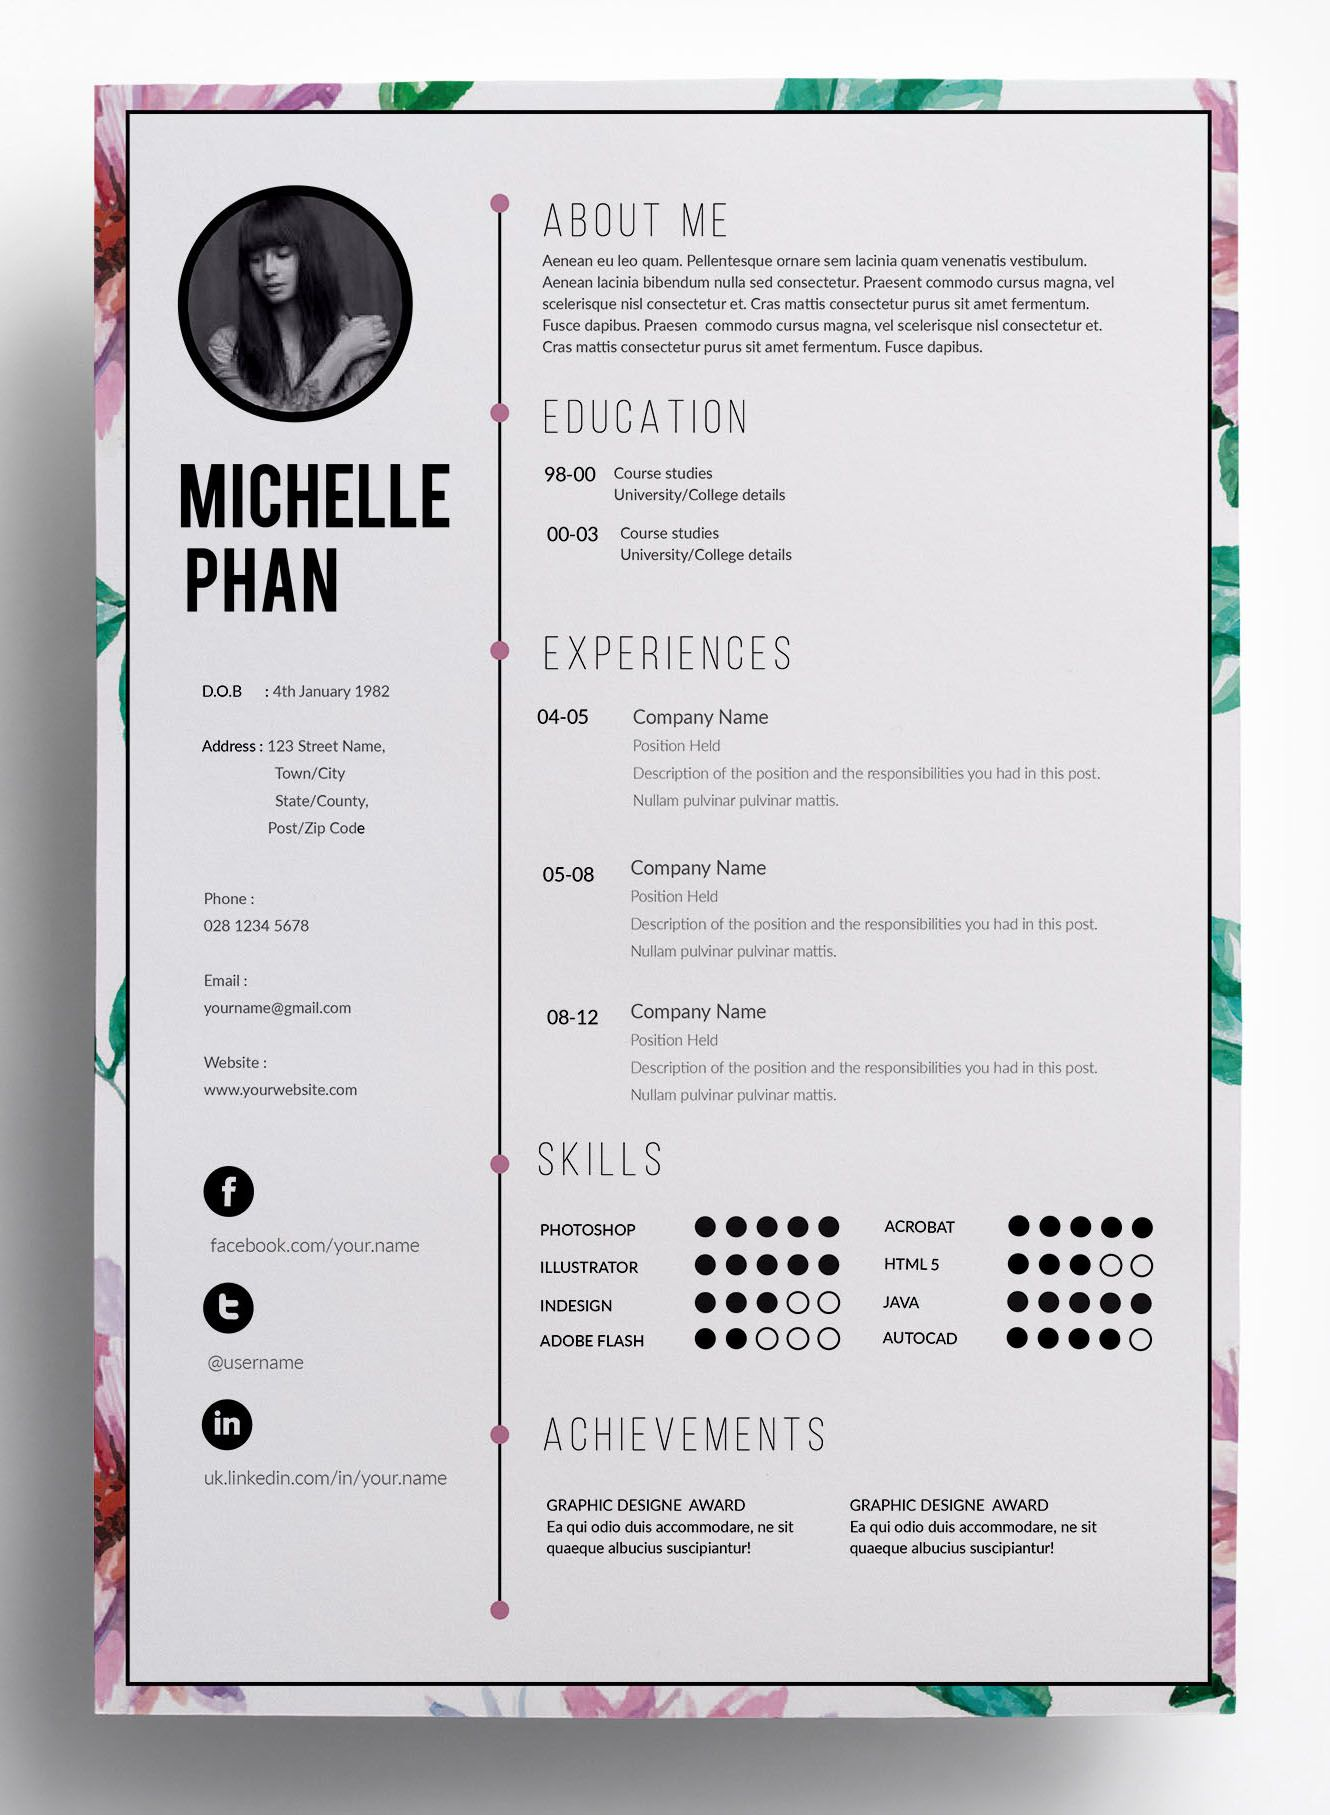 floral cv template design resume layout architecture pretty templates receptionist action Resume Pretty Resume Templates